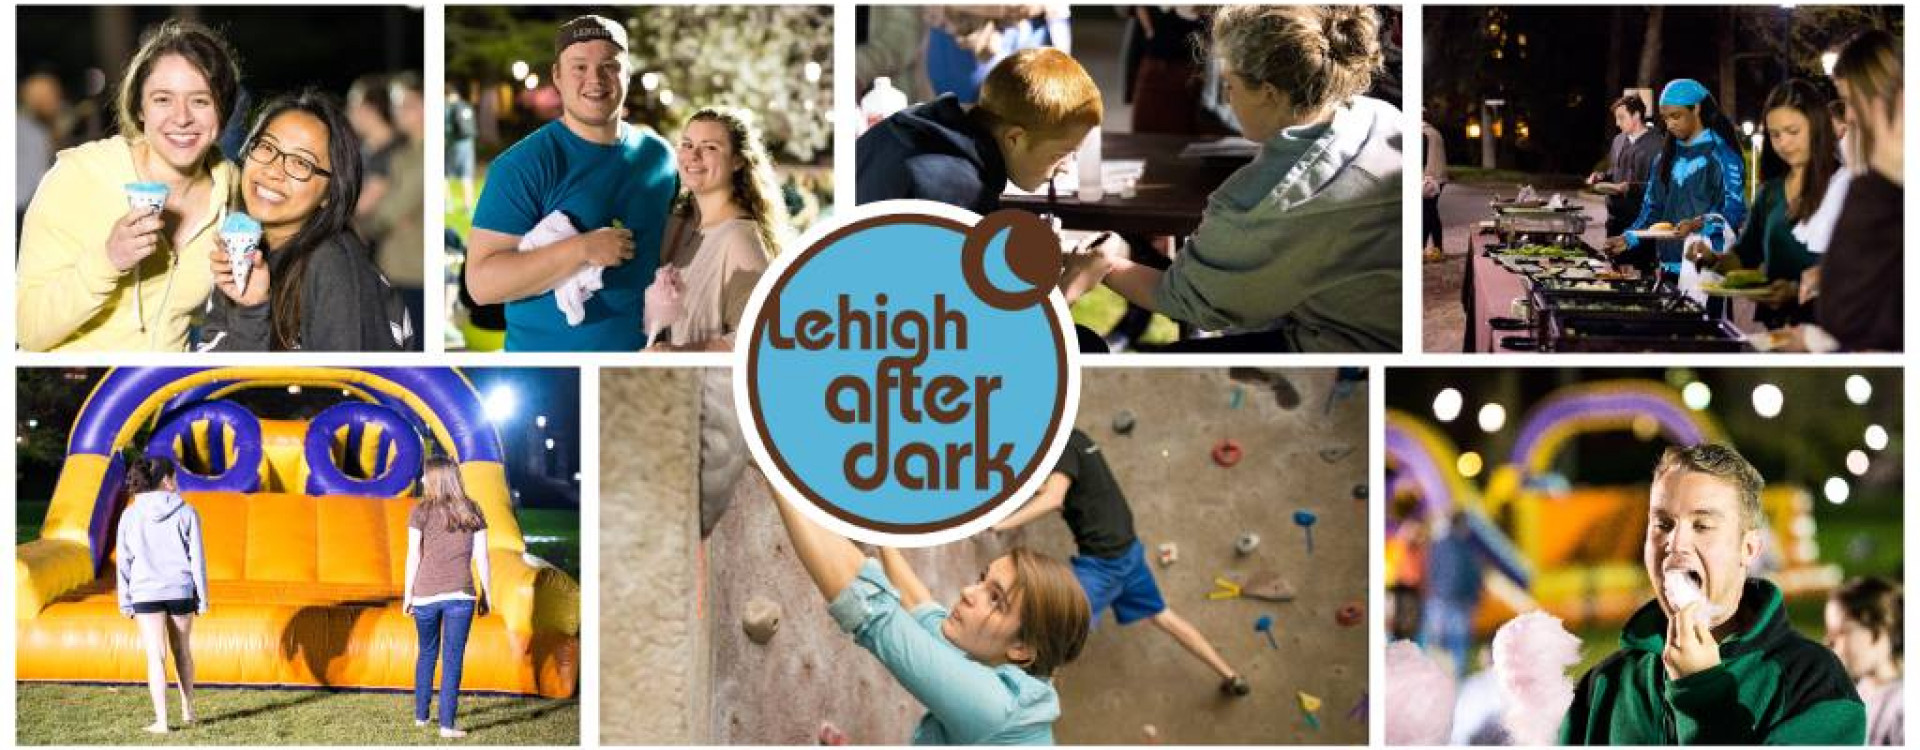 Lehigh After Dark banner with logo